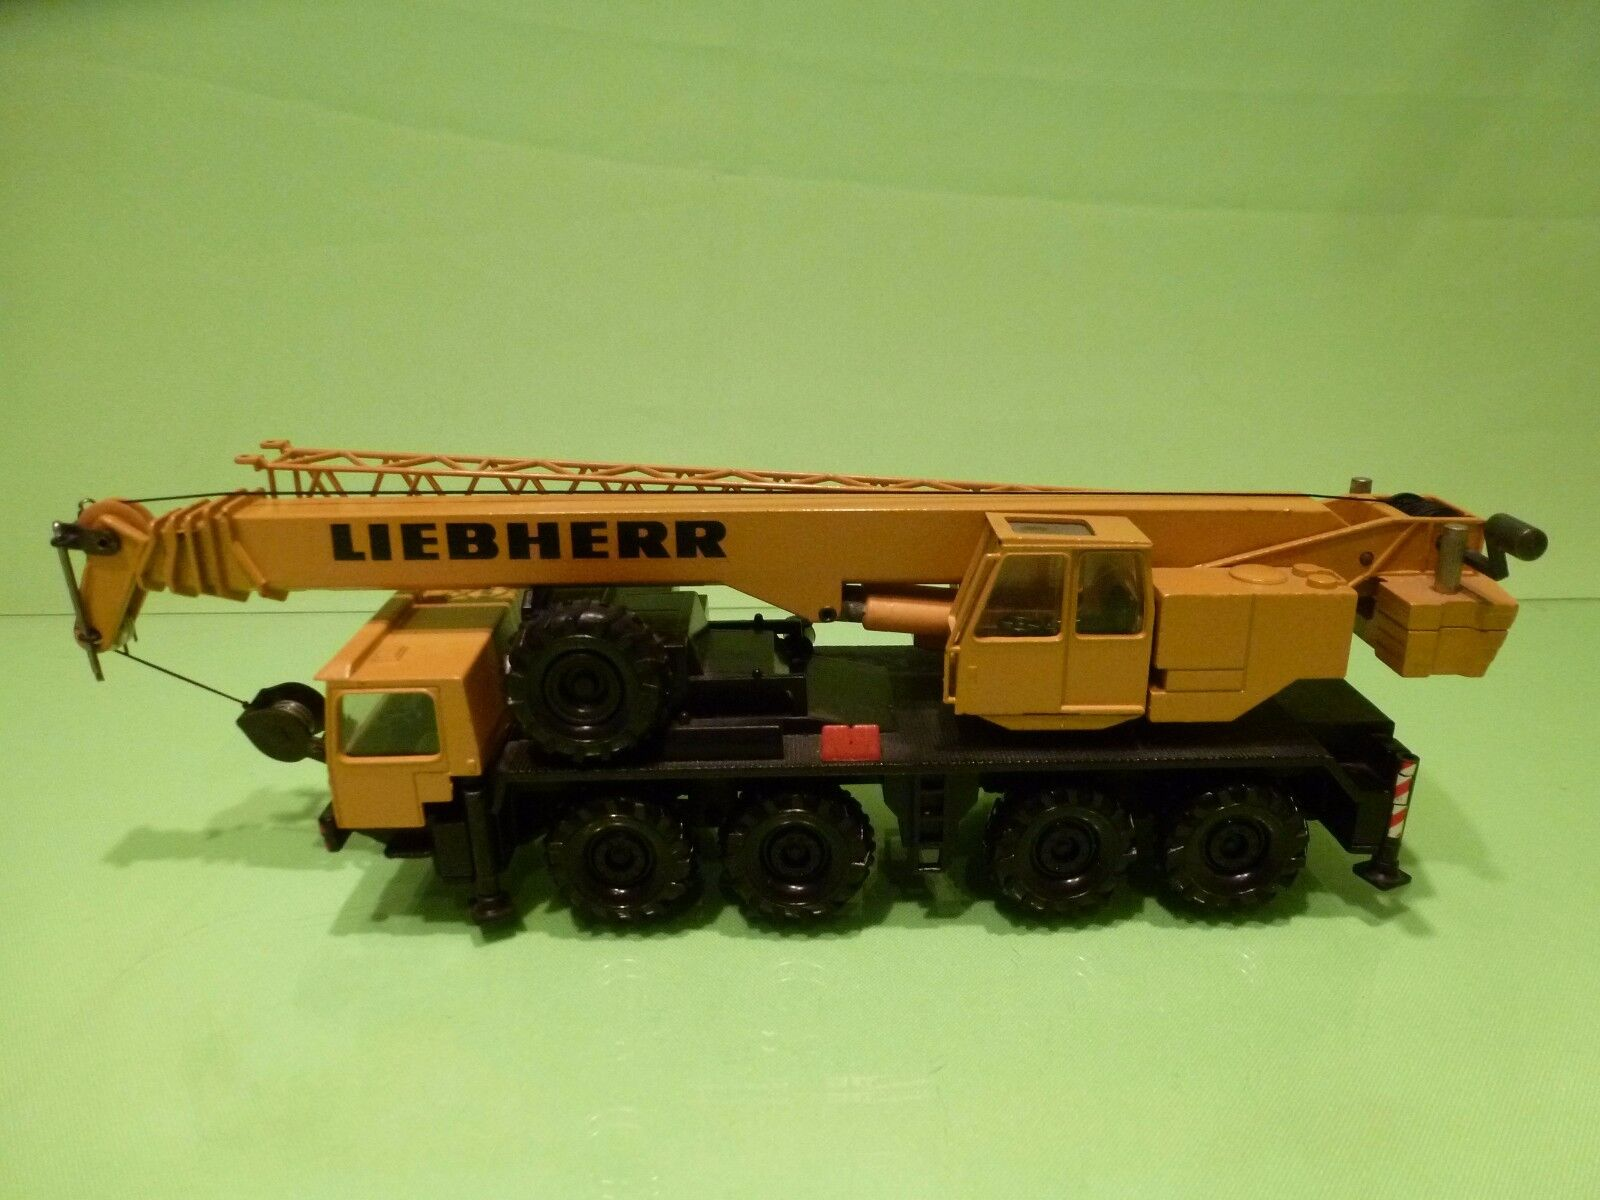 CONRAD 2079 TELESCOPE CRANE LIEBHERR  - MUSTARD YELLOW 1:50 - GOOD CONDITION